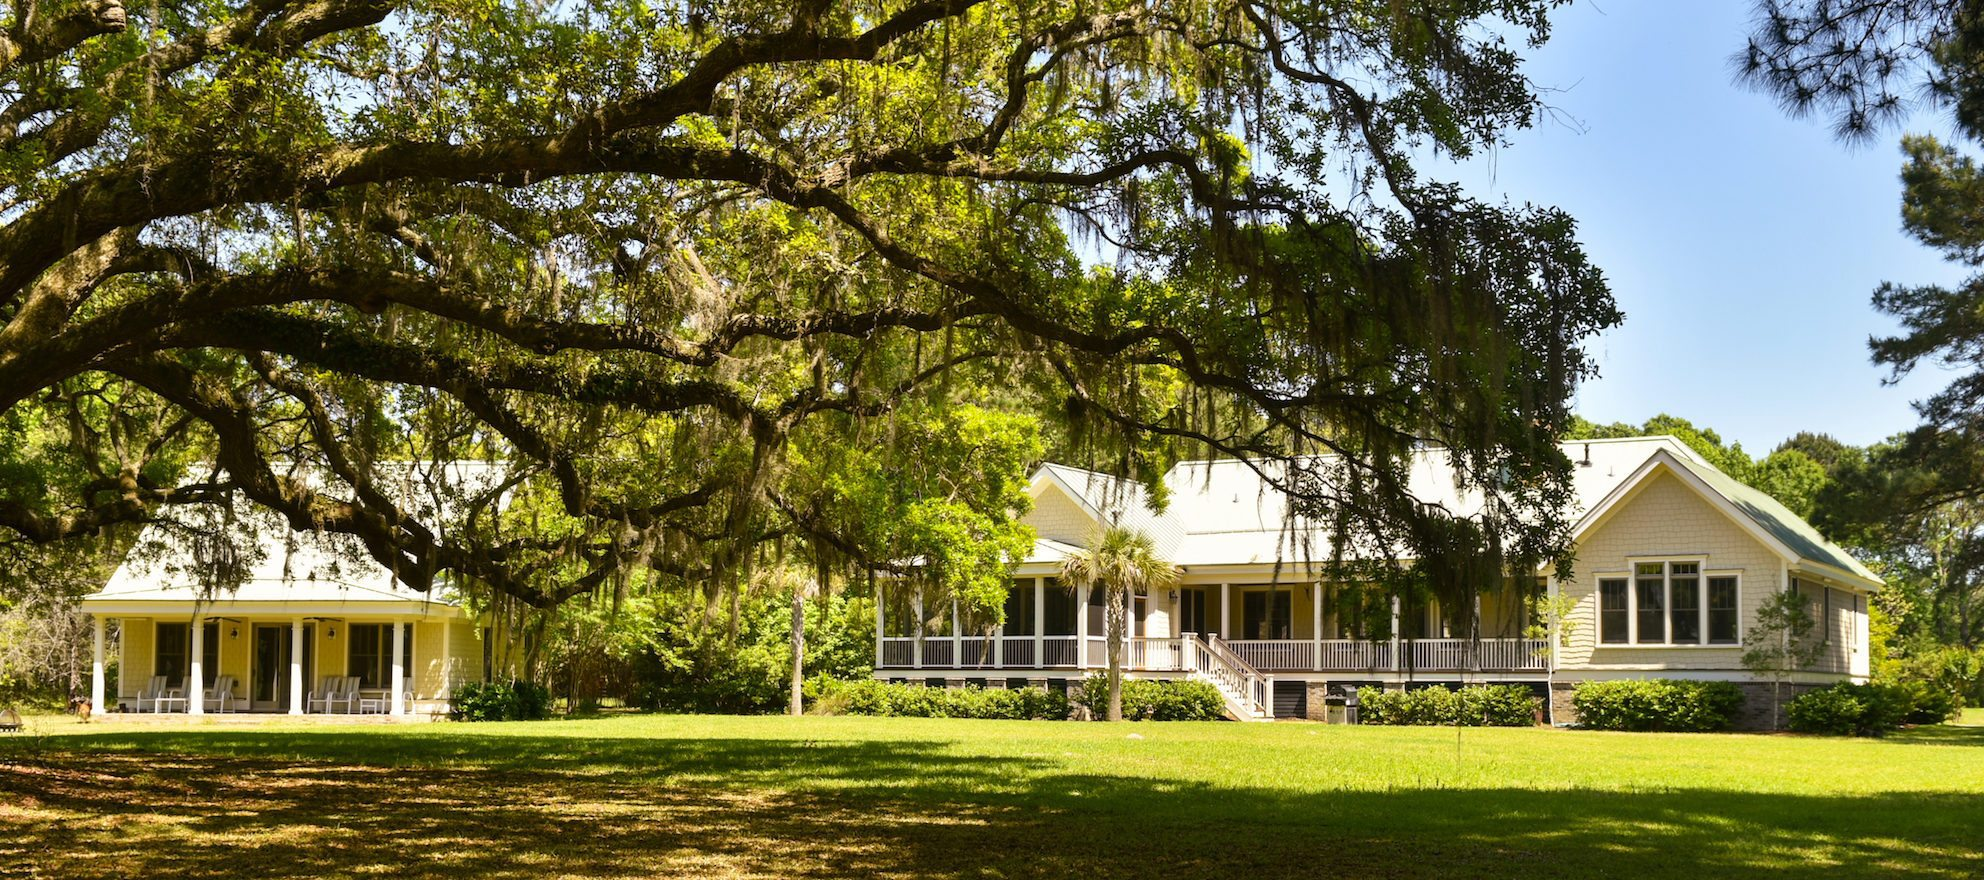 Luxury listing of the day: Home with guest cottage in Mt. Pleasant, S.C.